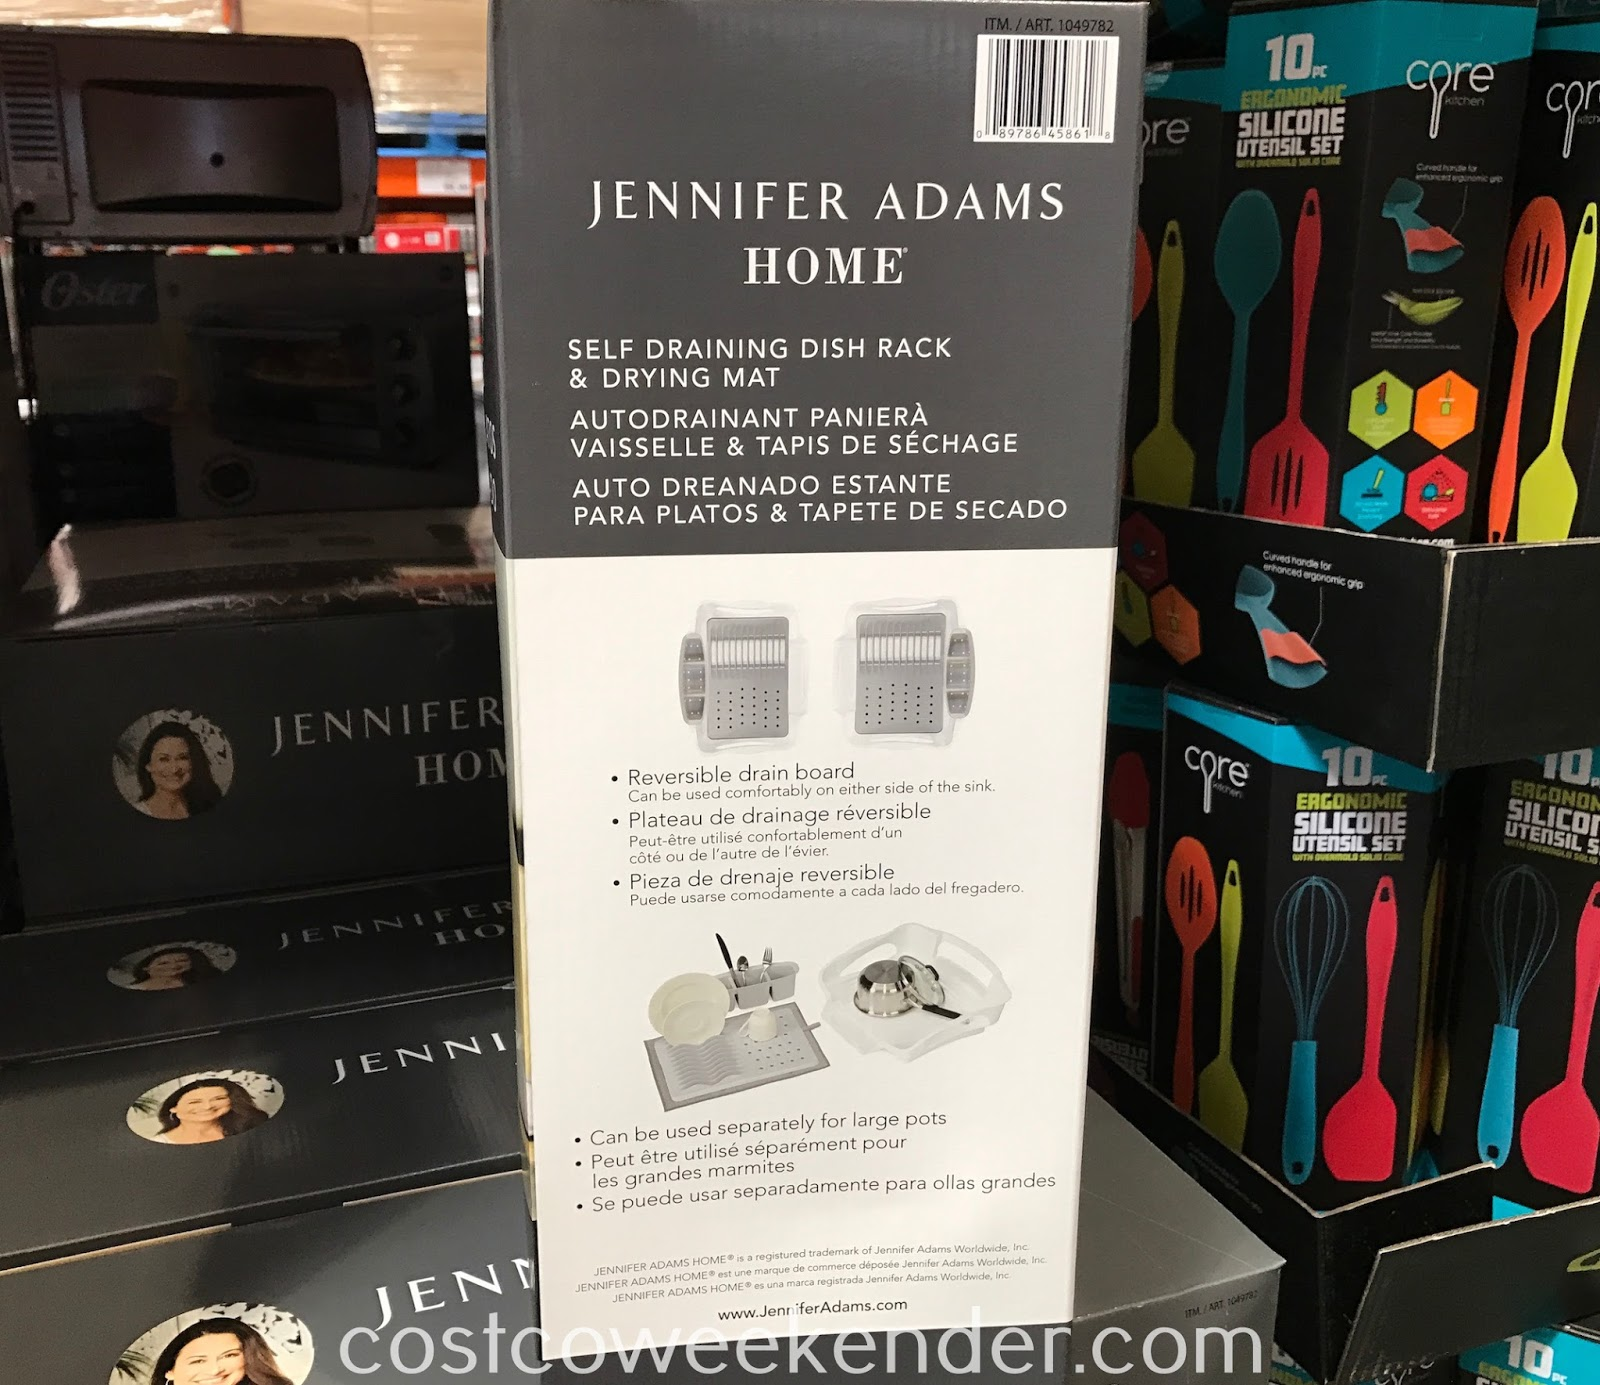 Make doing the dishes easier with the Jennifer Adams Home Self Draining Dish Rack & Drying Mat